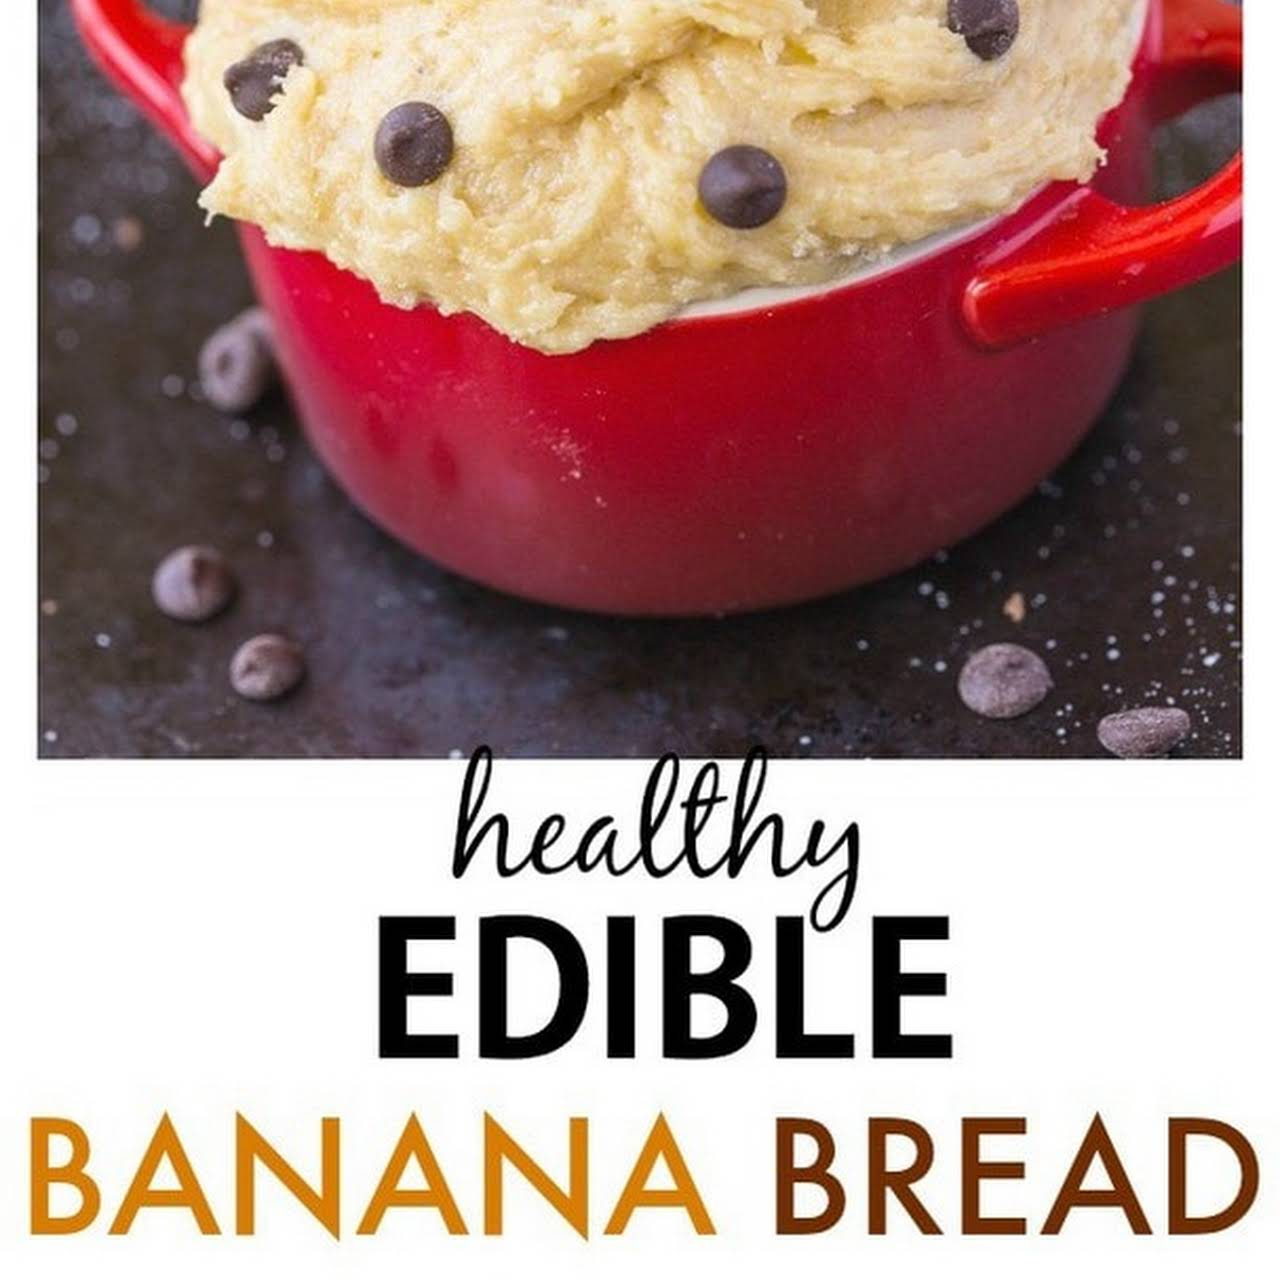 Healthy Edible Banana Bread Batter for one